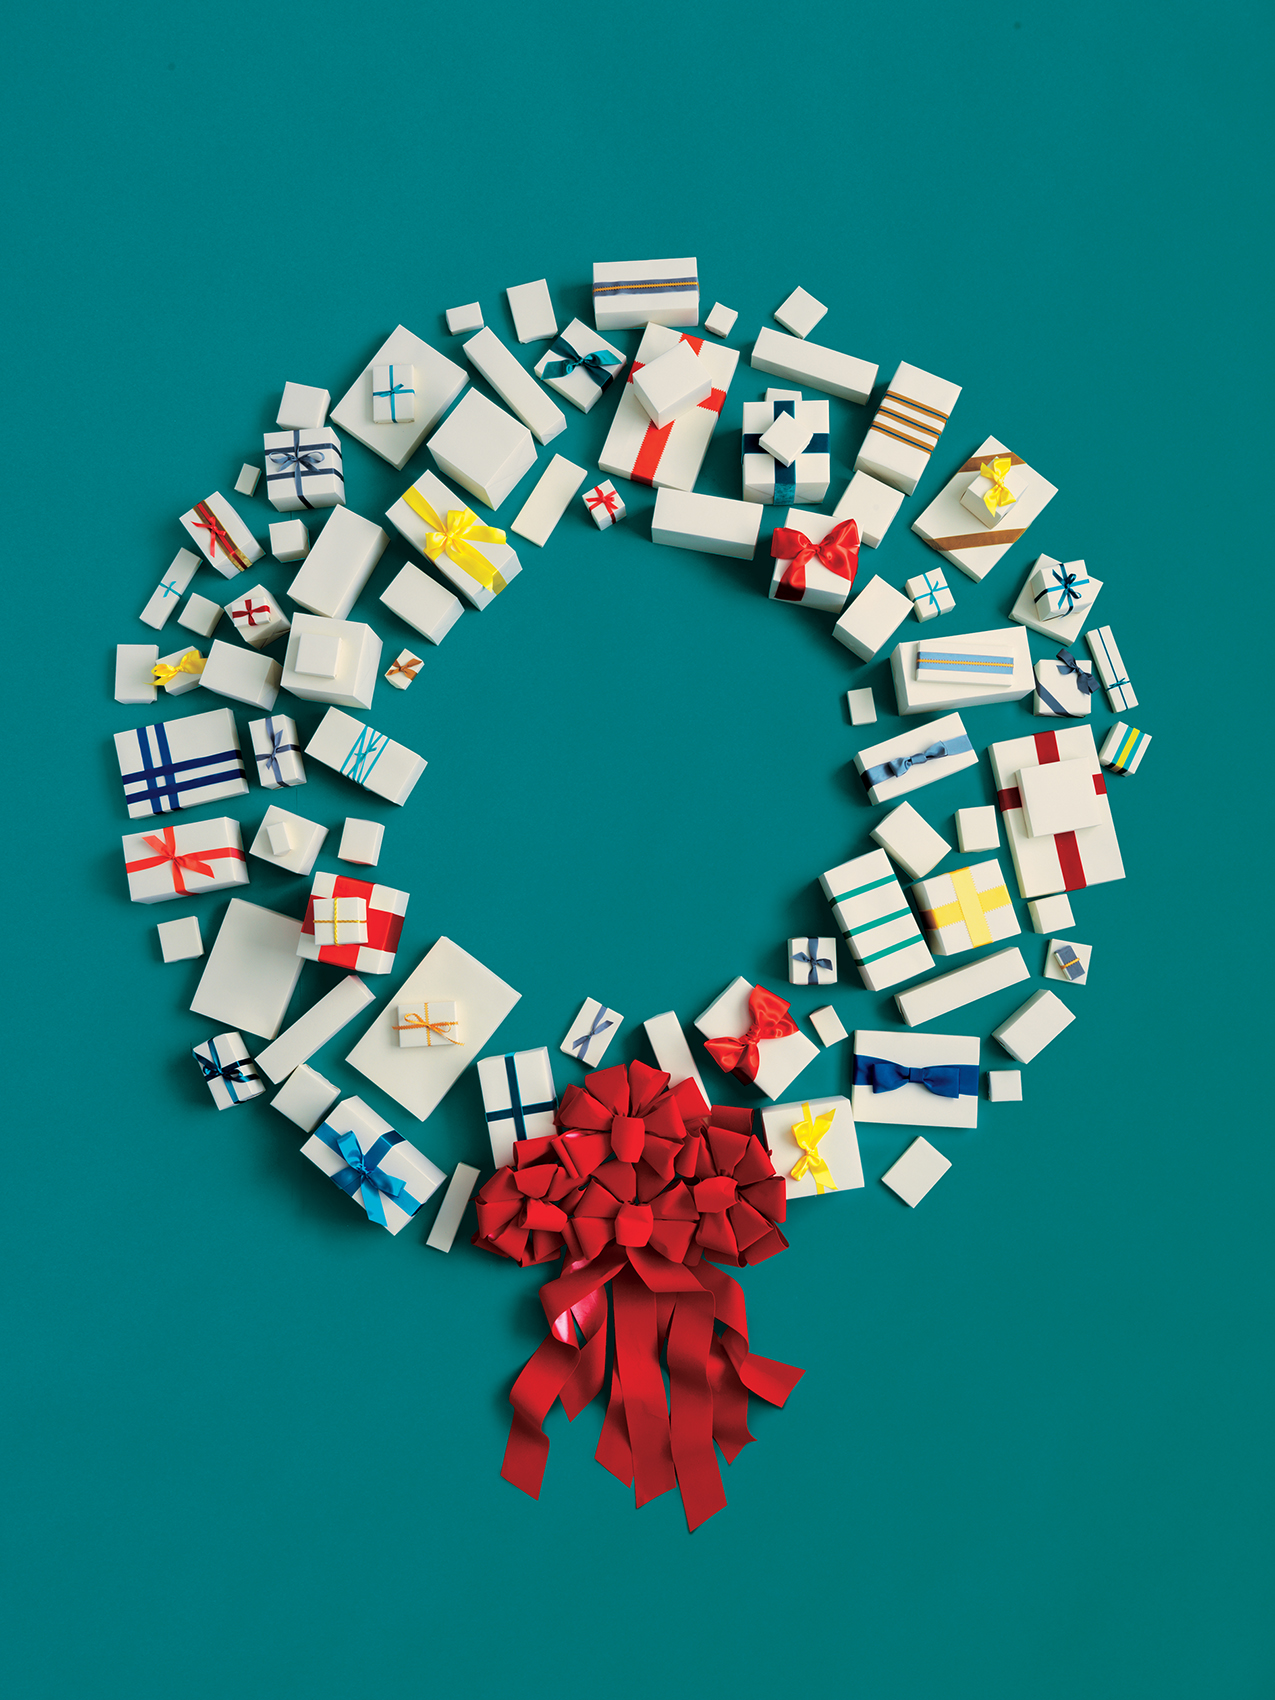 still-life-of-assorted-presents-forming-a-wreath